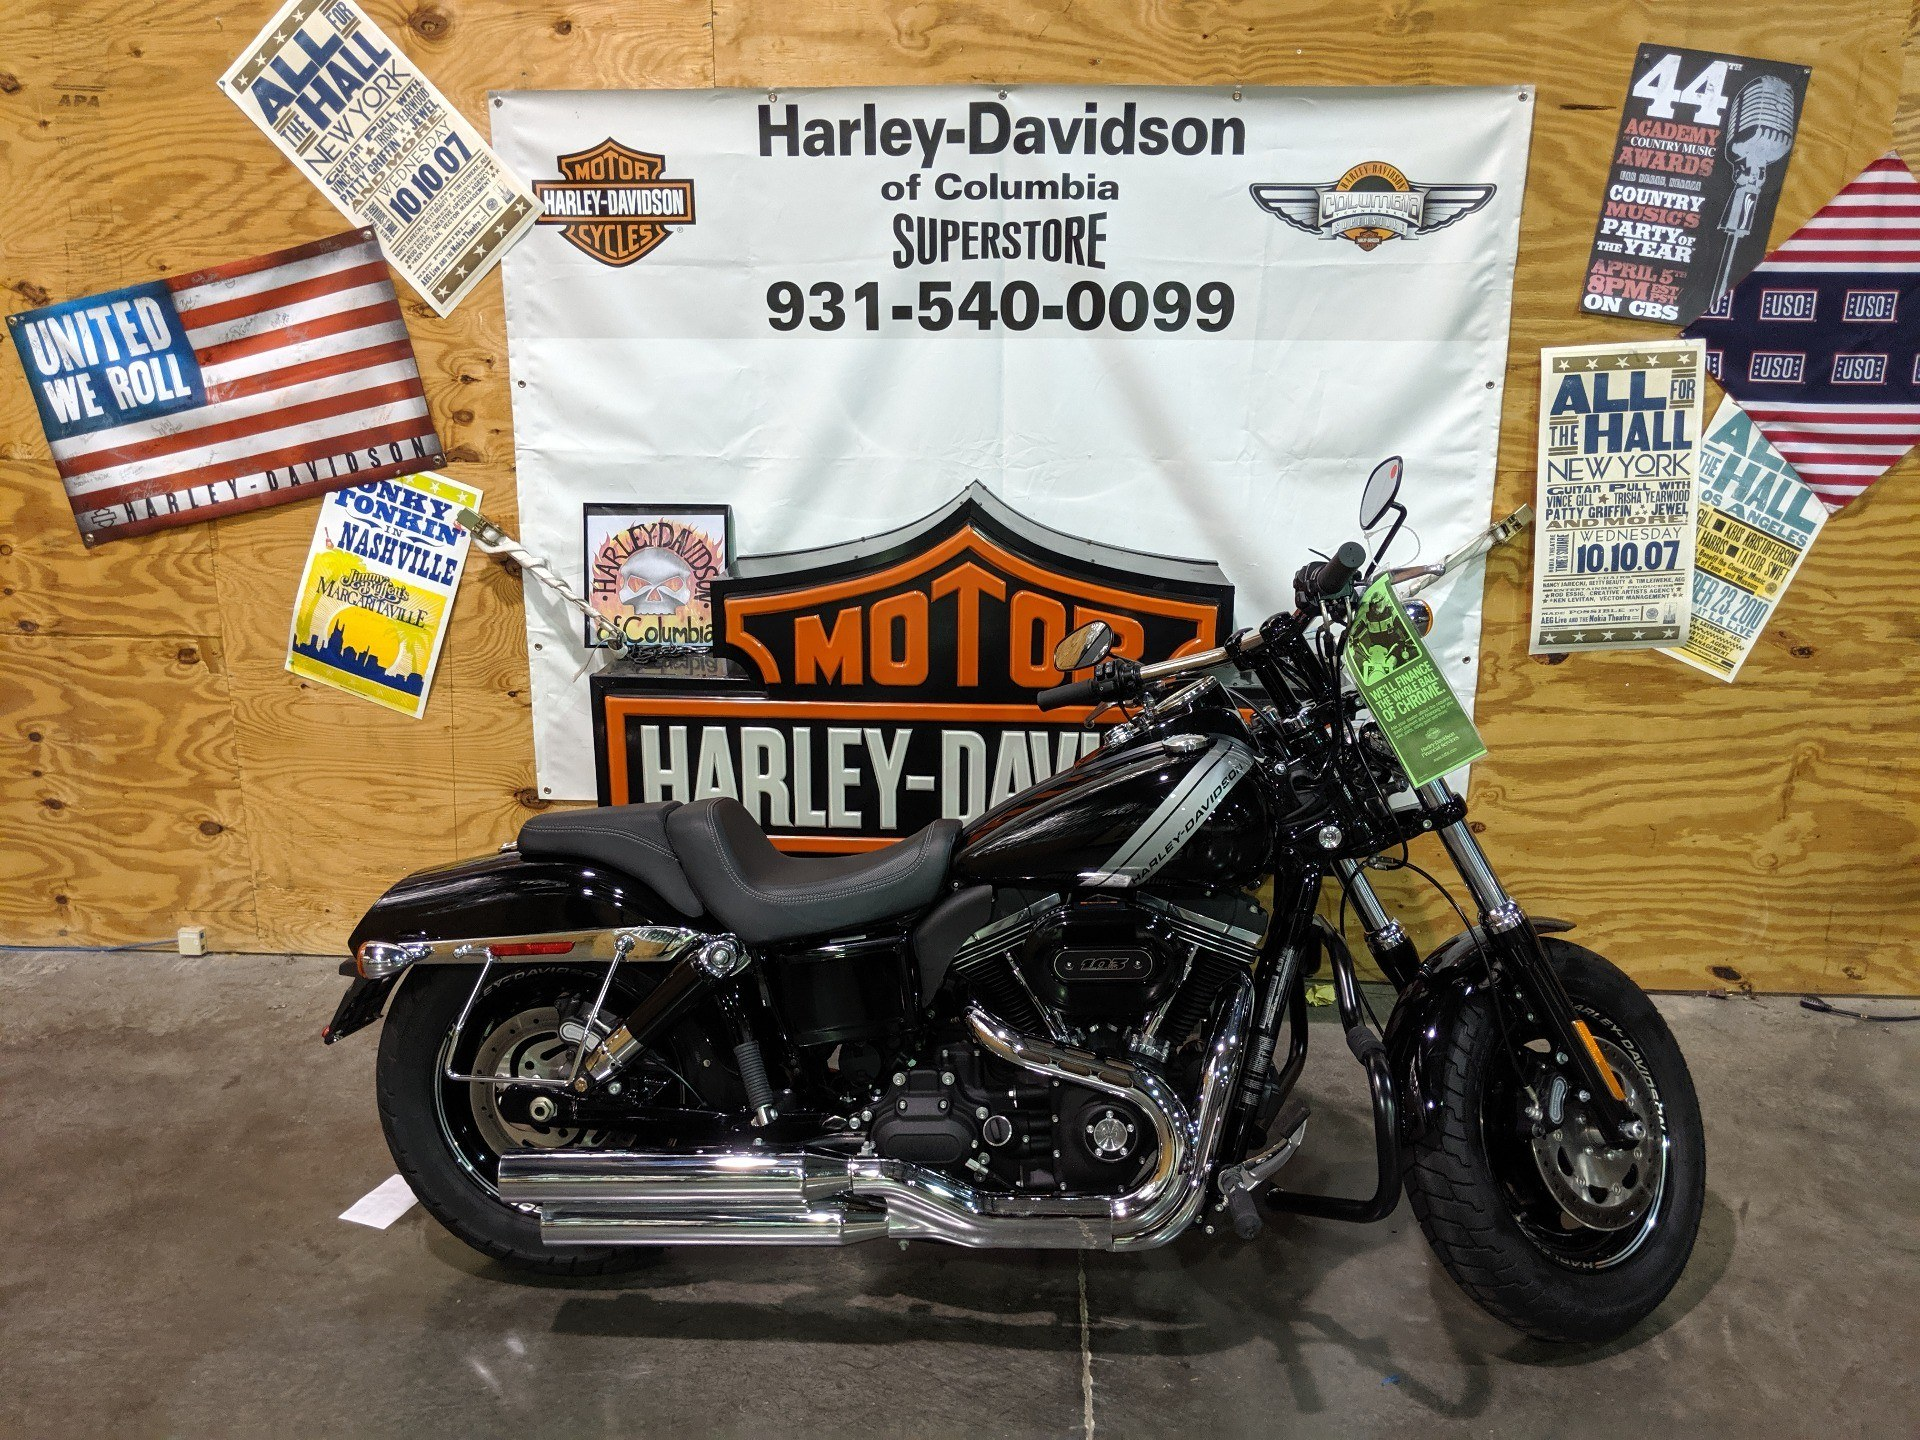 2017 Harley-Davidson FAT BOB in Columbia, Tennessee - Photo 1